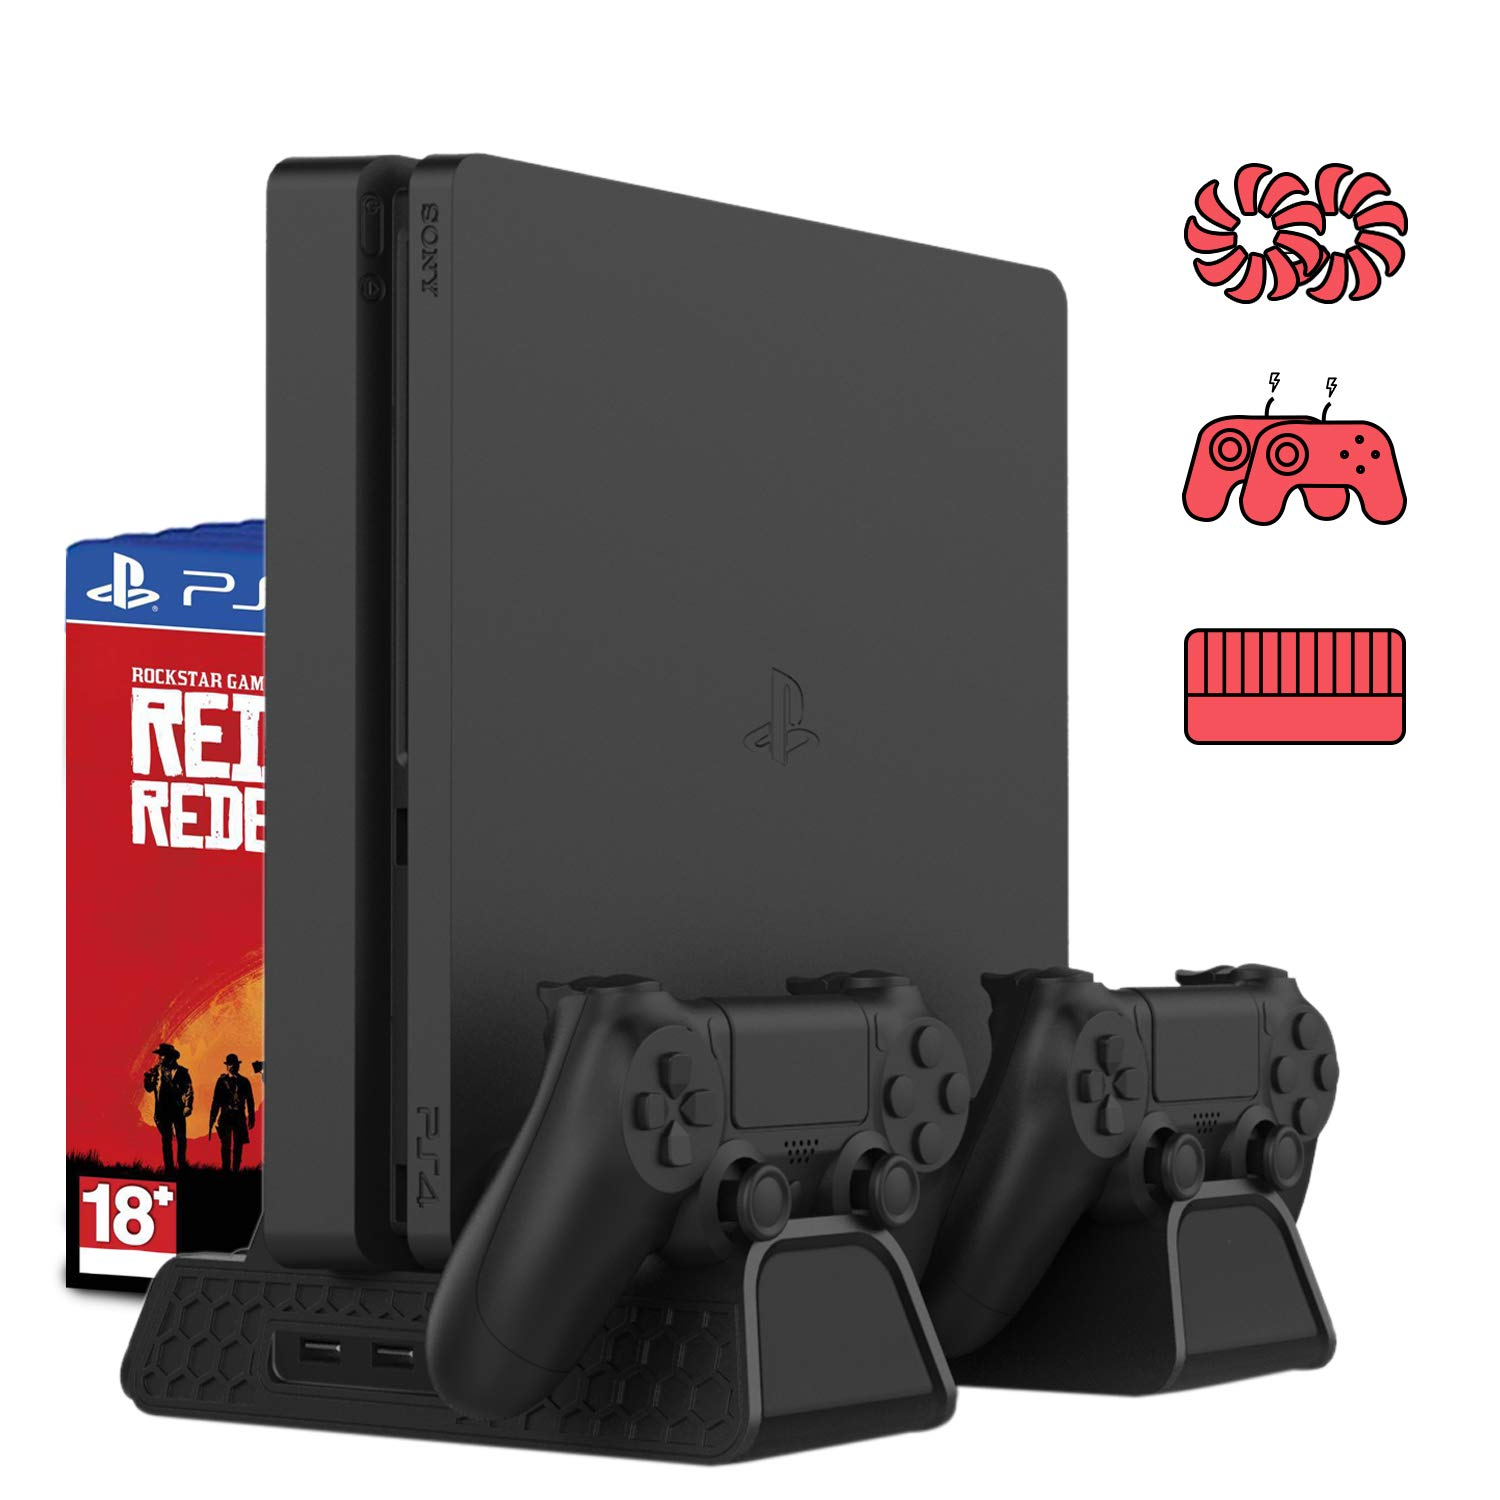 ps4-pro-cooling-fan-heat-sink-base-vertical-charger-stand-dual-controller-charging-dock-for-font-b-playstation-b-font-4-ps-4-pro-accessories